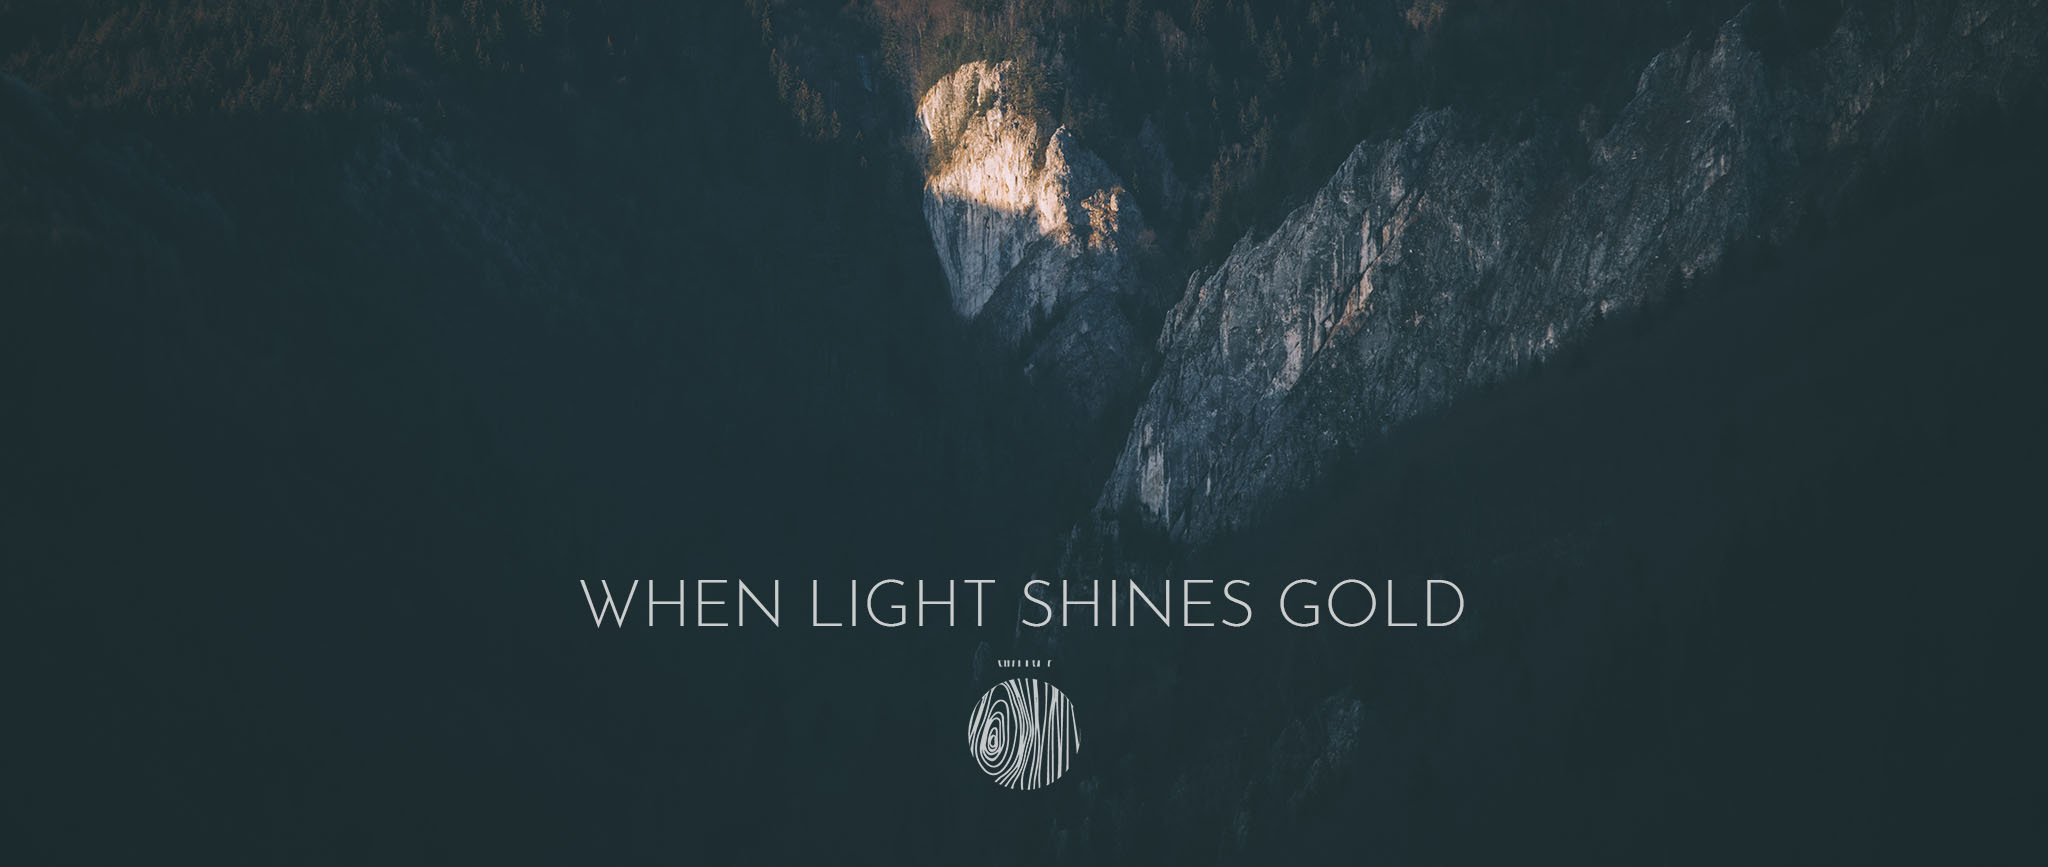 when light shines gold